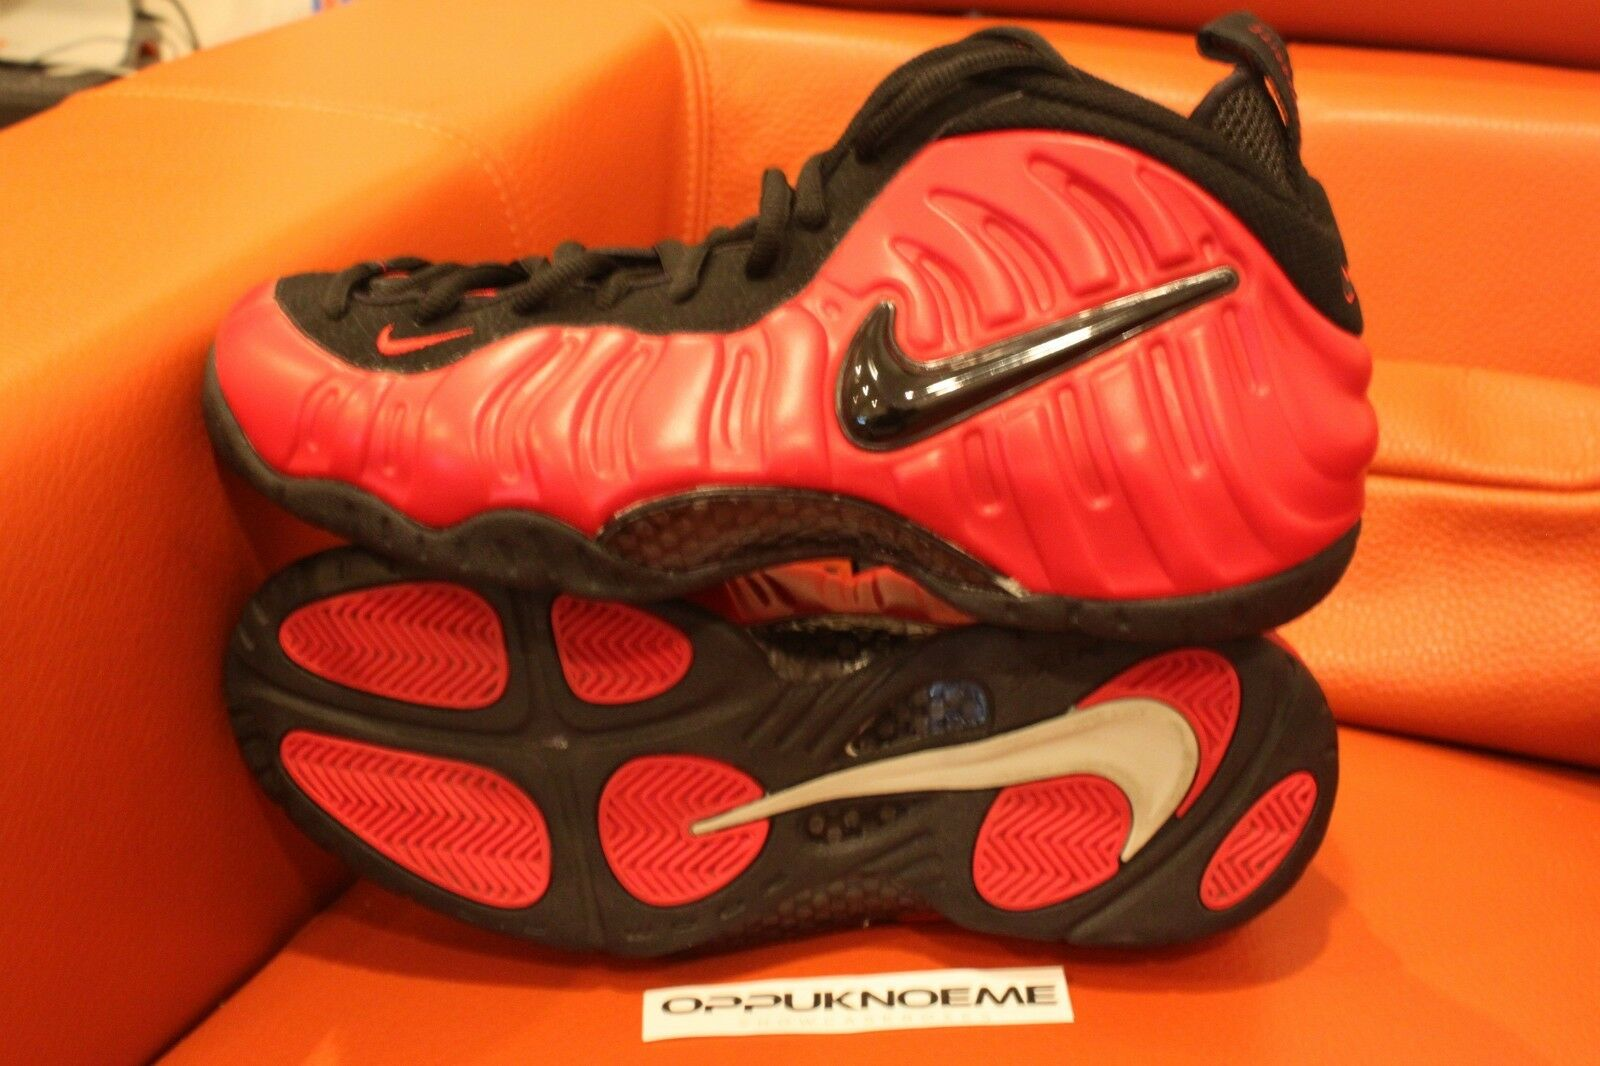 New Nike Air Foamposite Pro Varsity Red black Sz 10 foams 624041 602 one penny